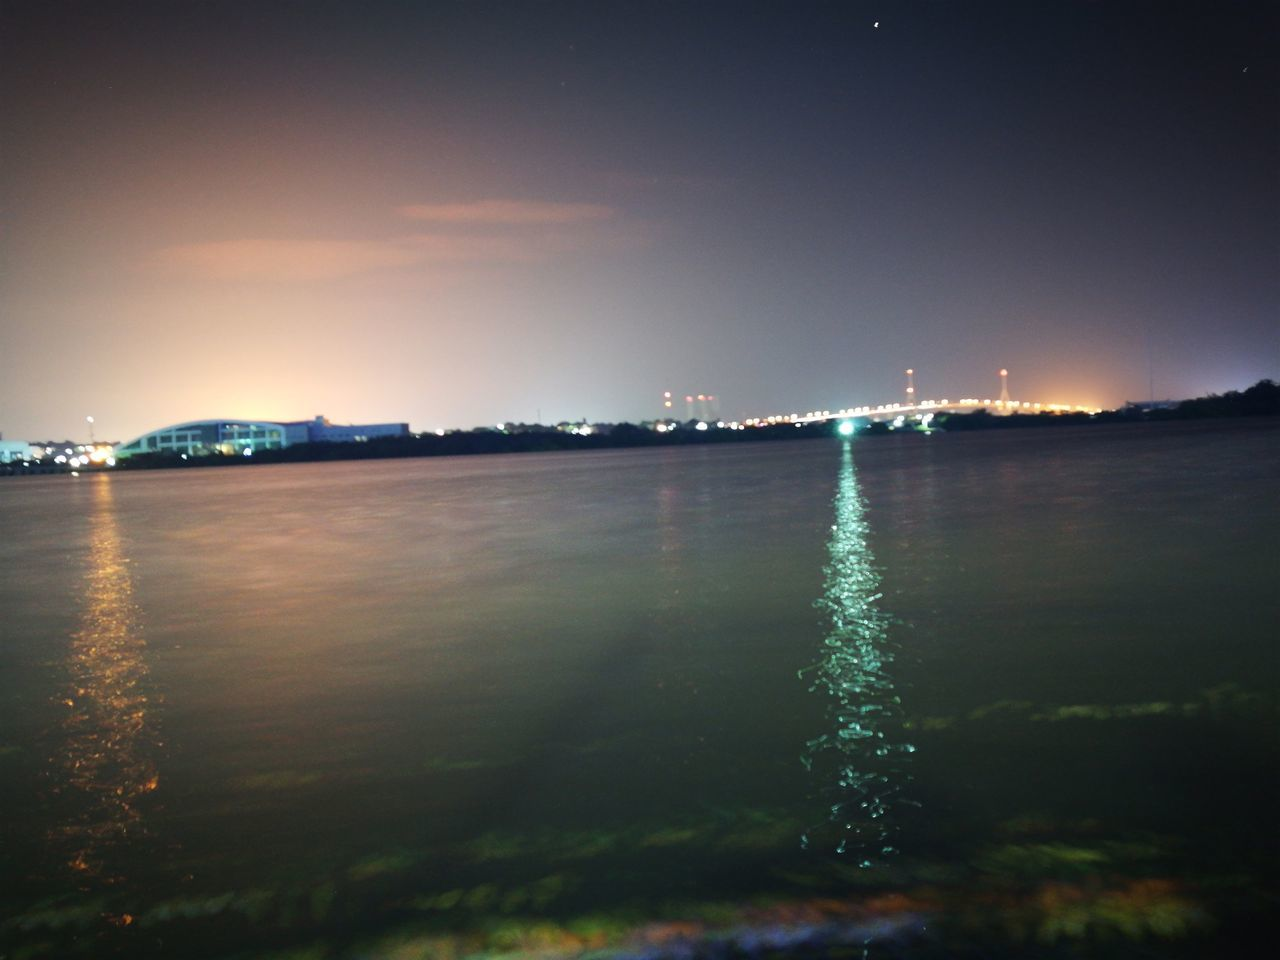 Tampico Tampicohermoso Nocturna Night Reflection Sky Laguna Puente